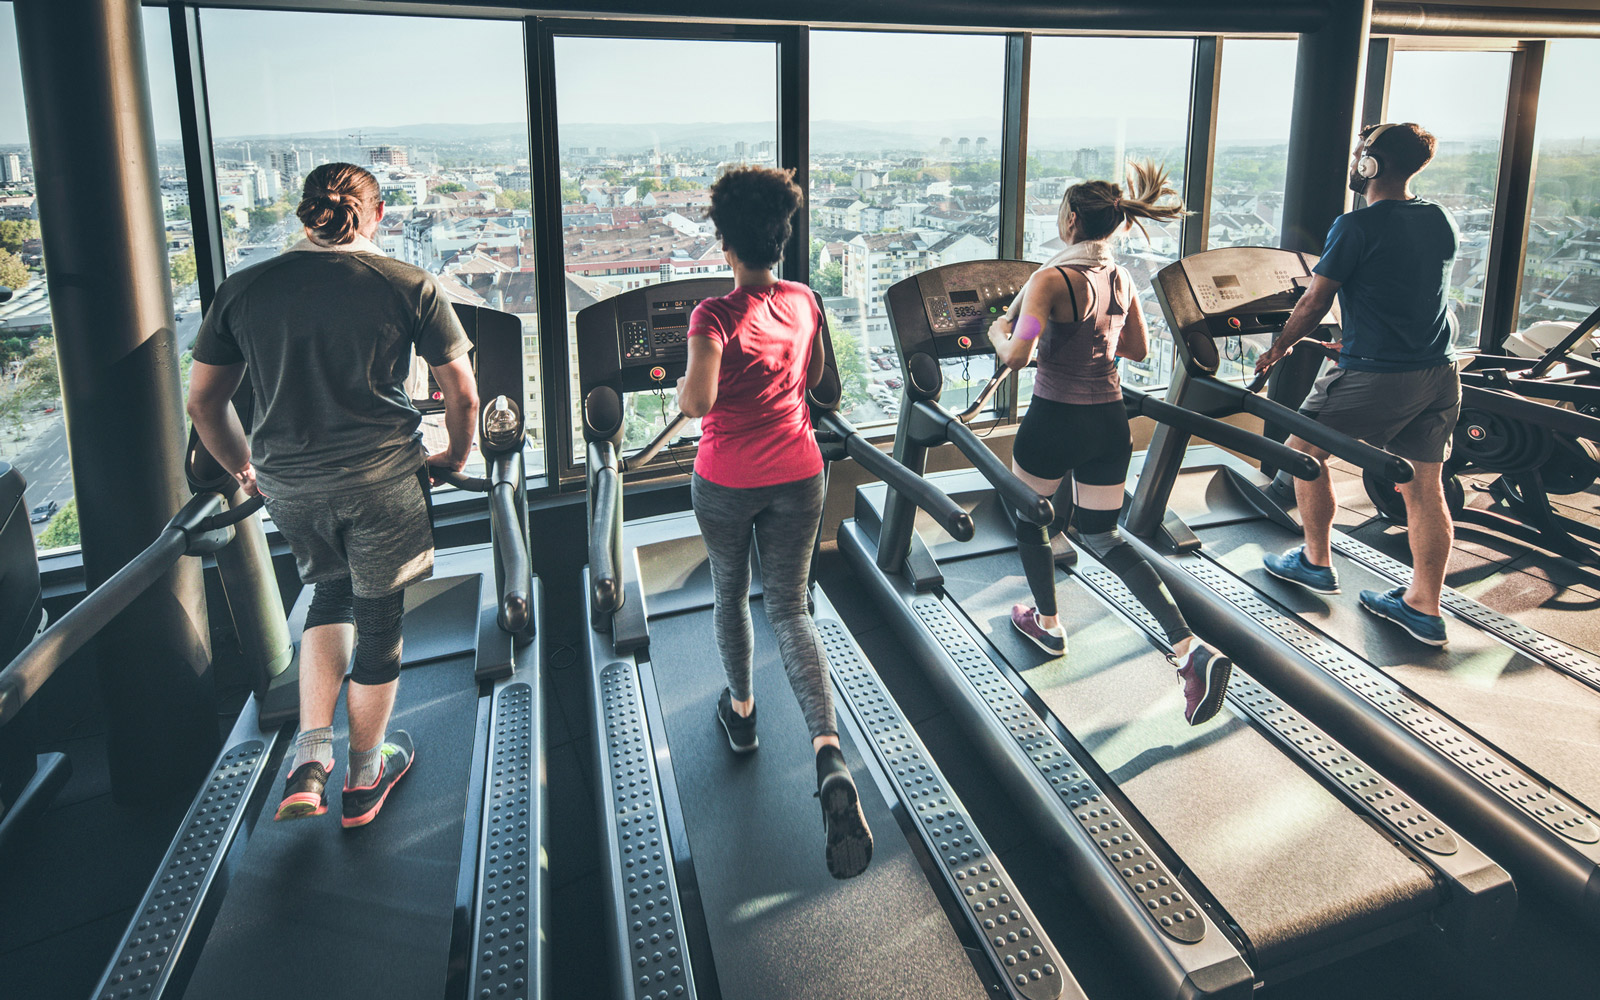 This Gym Chain Is Banning Cable News to 'Promote a Healthy Way of Life'